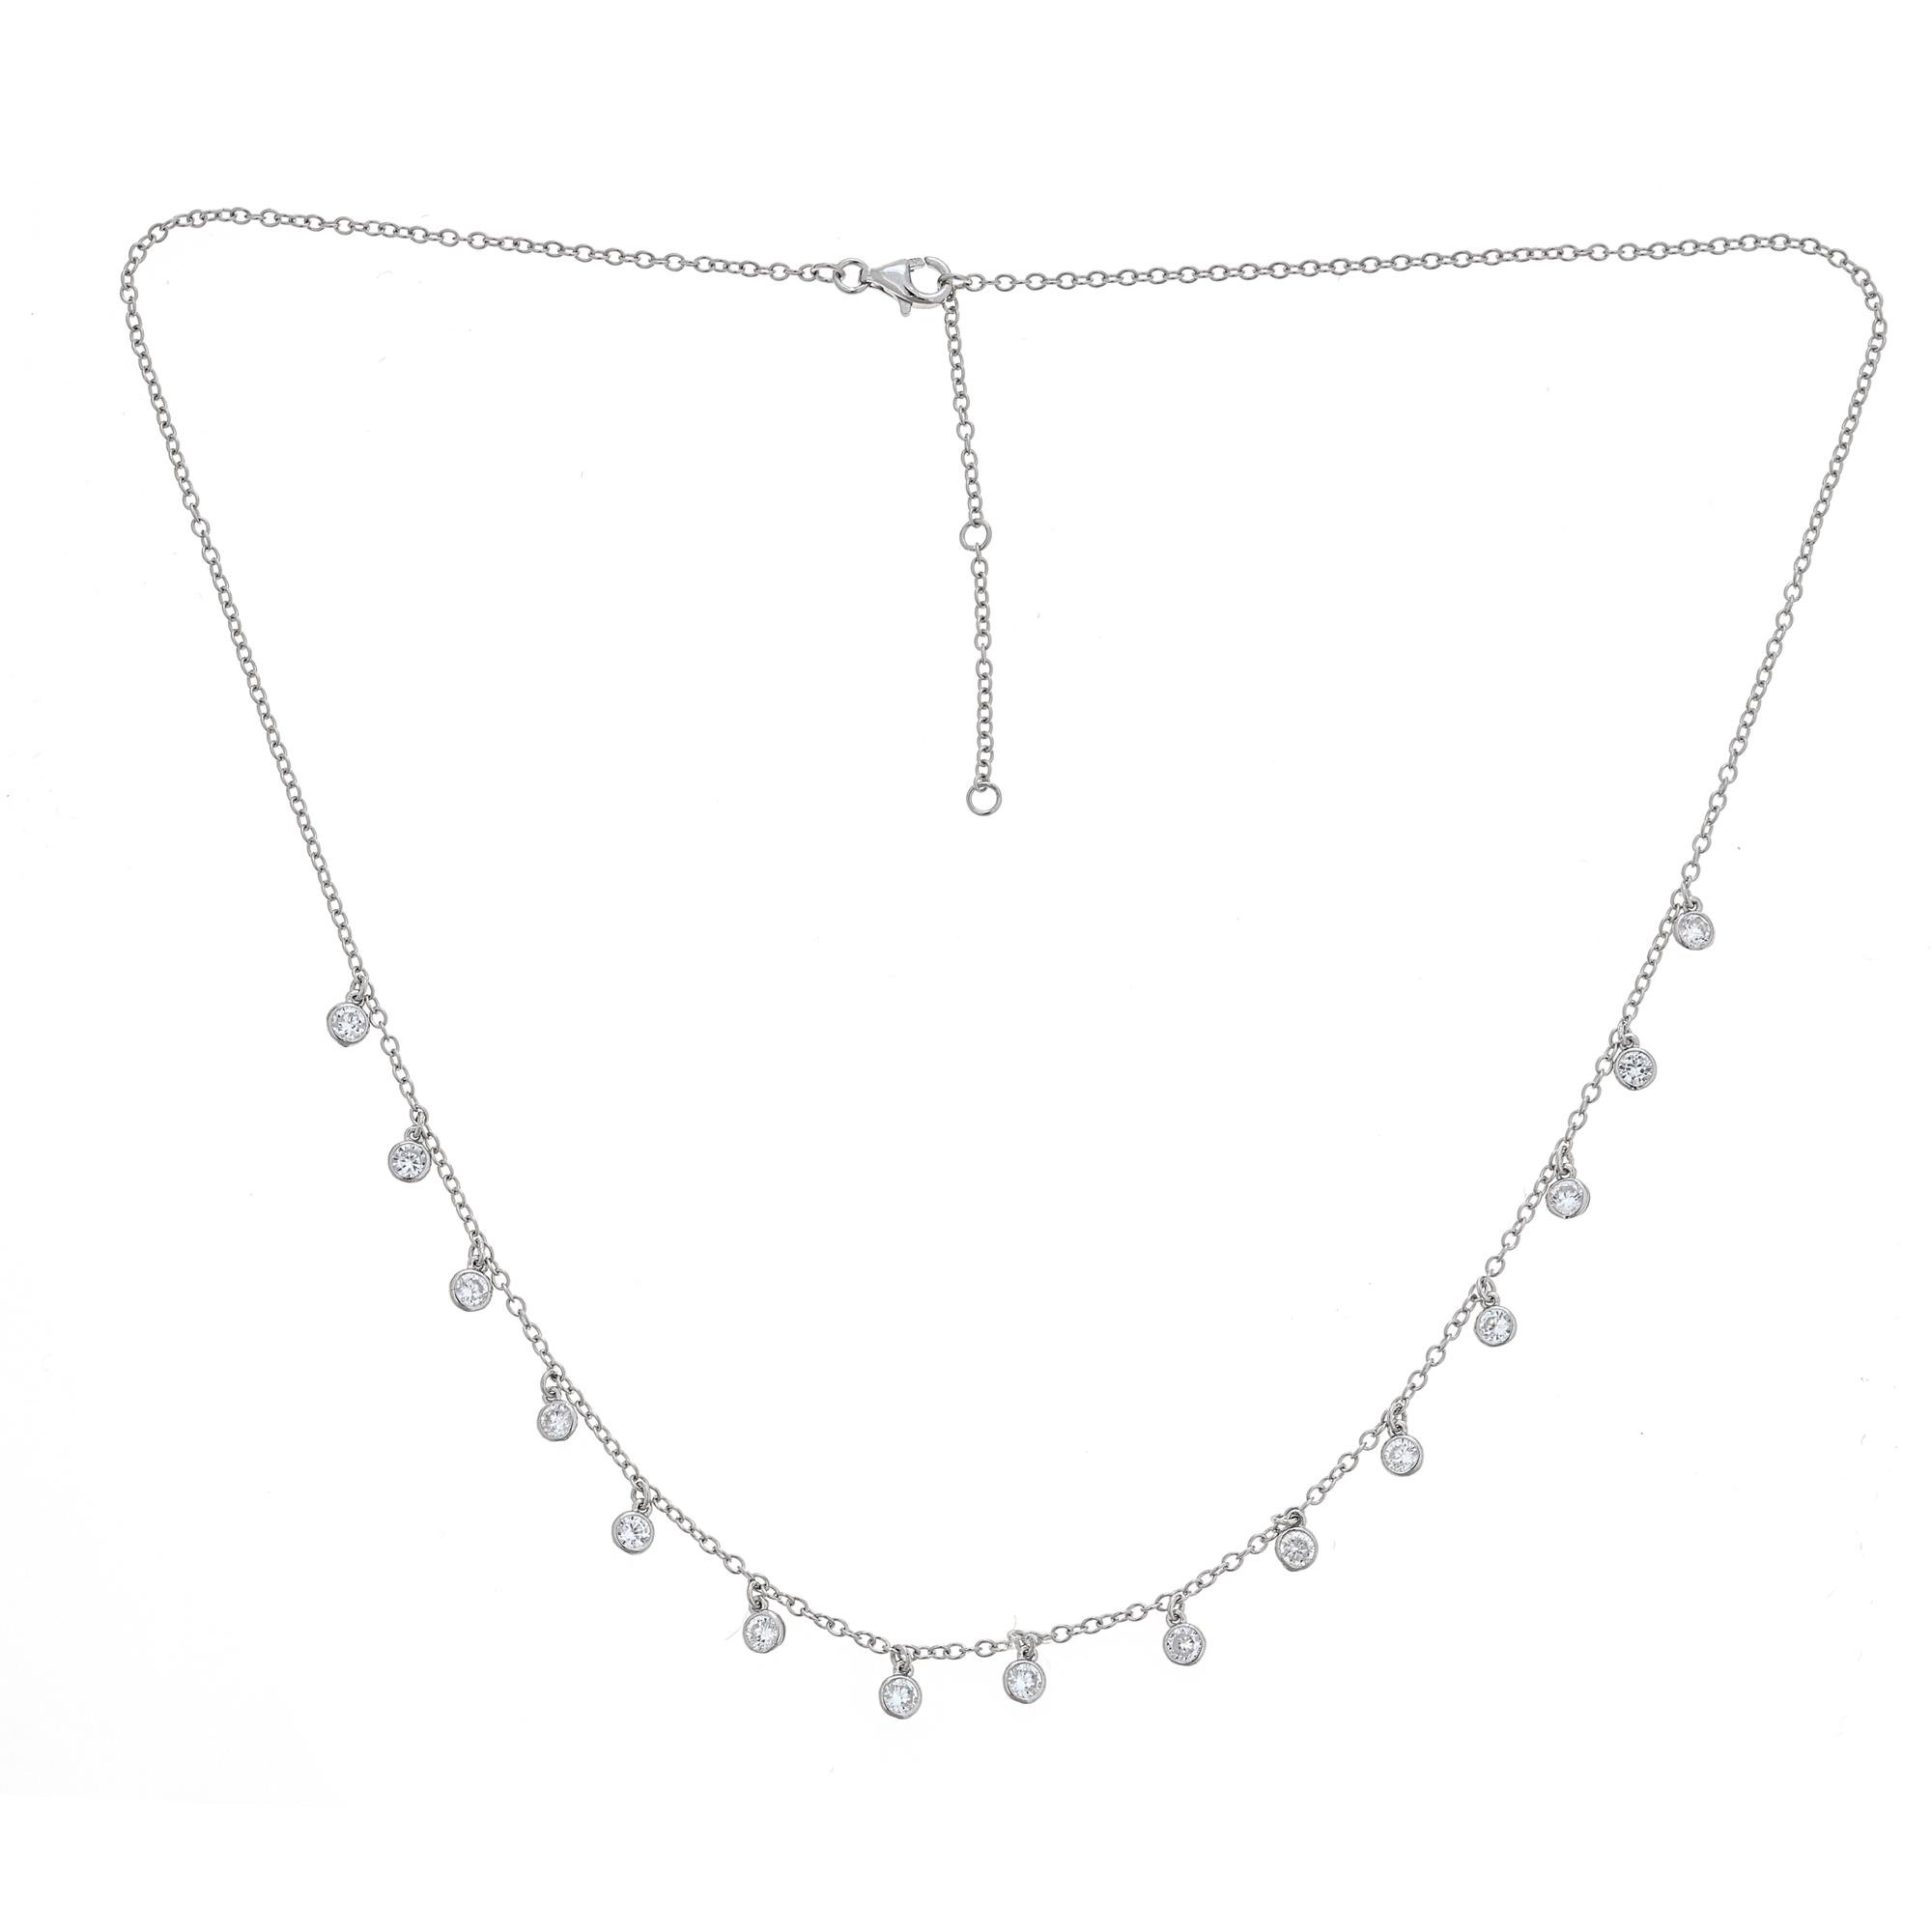 Platinum Plated 925 Sterling Silver Round Cubic Zirconia Bezel CZ by Yard Drop Dangle Station Collar Necklace, Adjustable Length 18,19,20